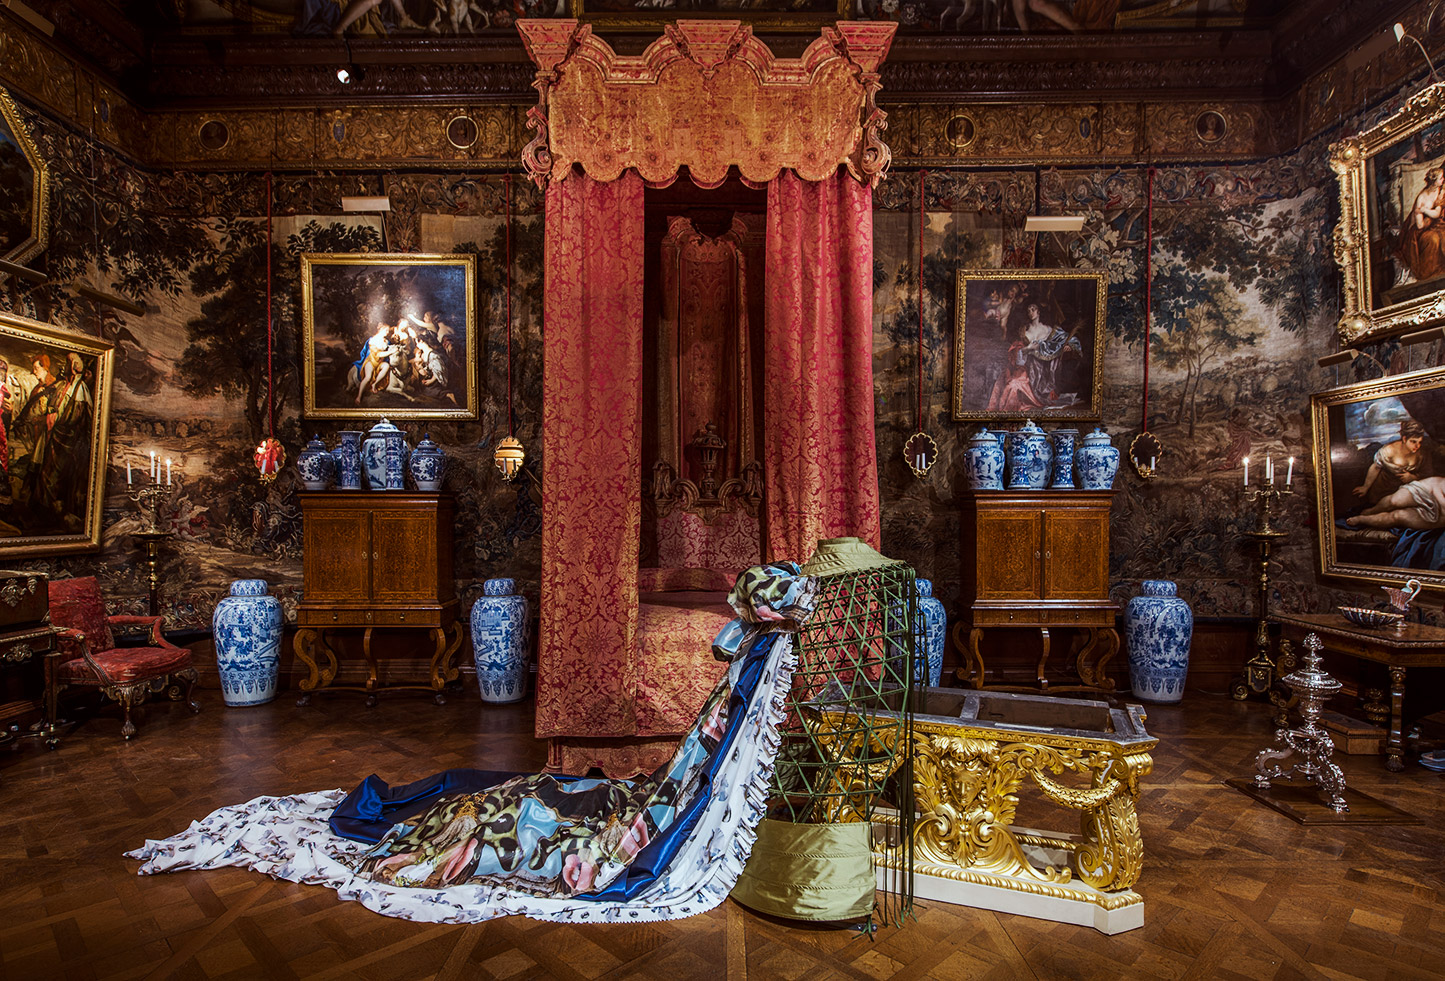 Installation view of 'Her Grace Land' by Linder at Chatsworth